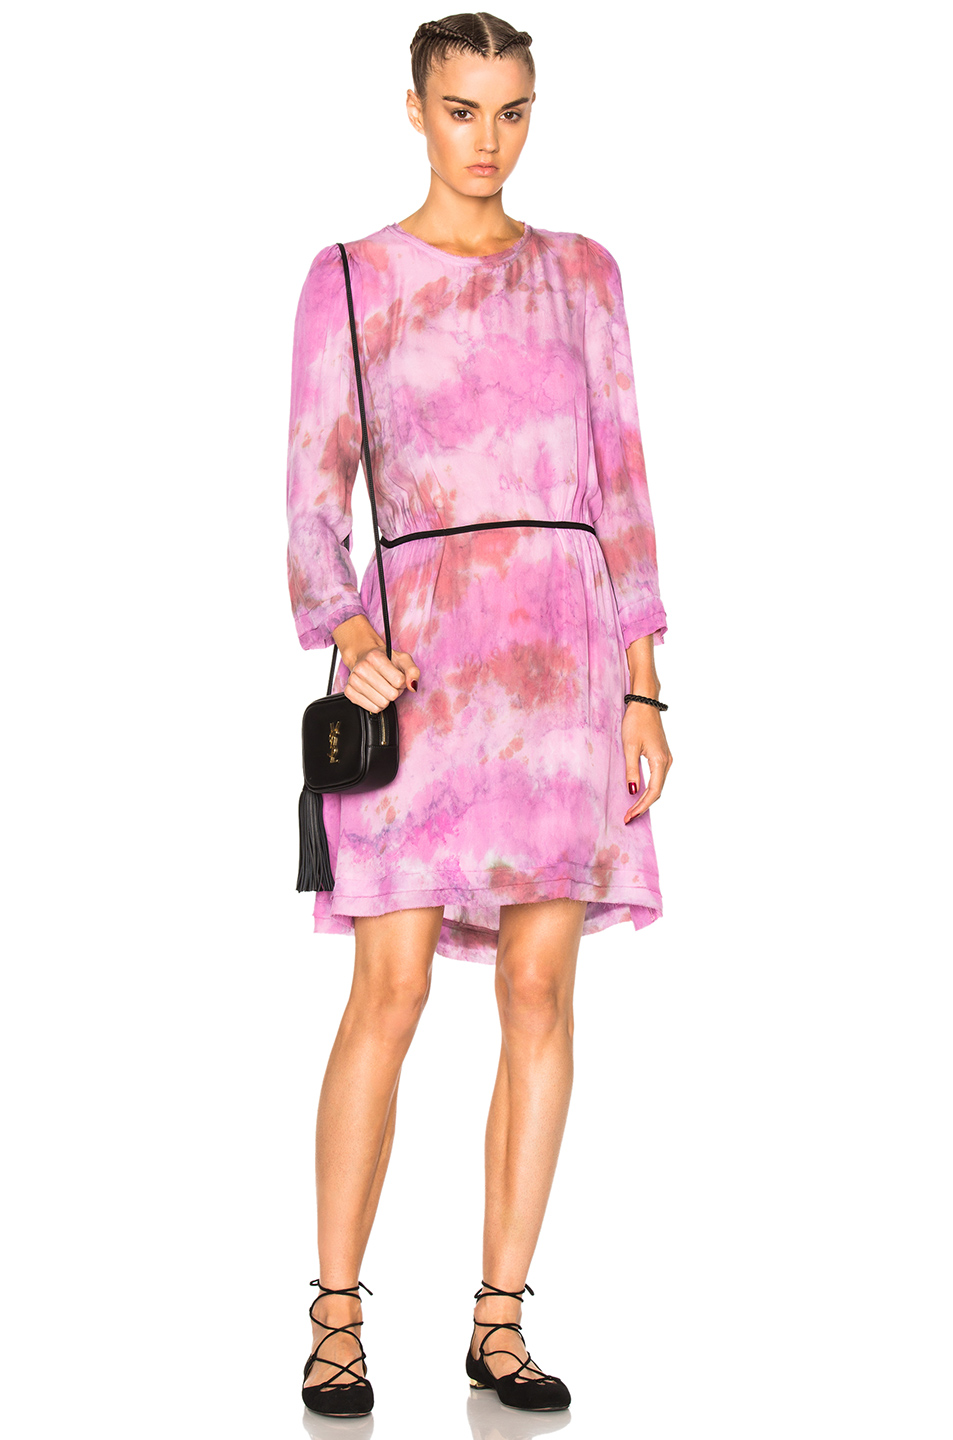 Raquel Allegra Swing Dress in Pink,Ombre & Tie Dye